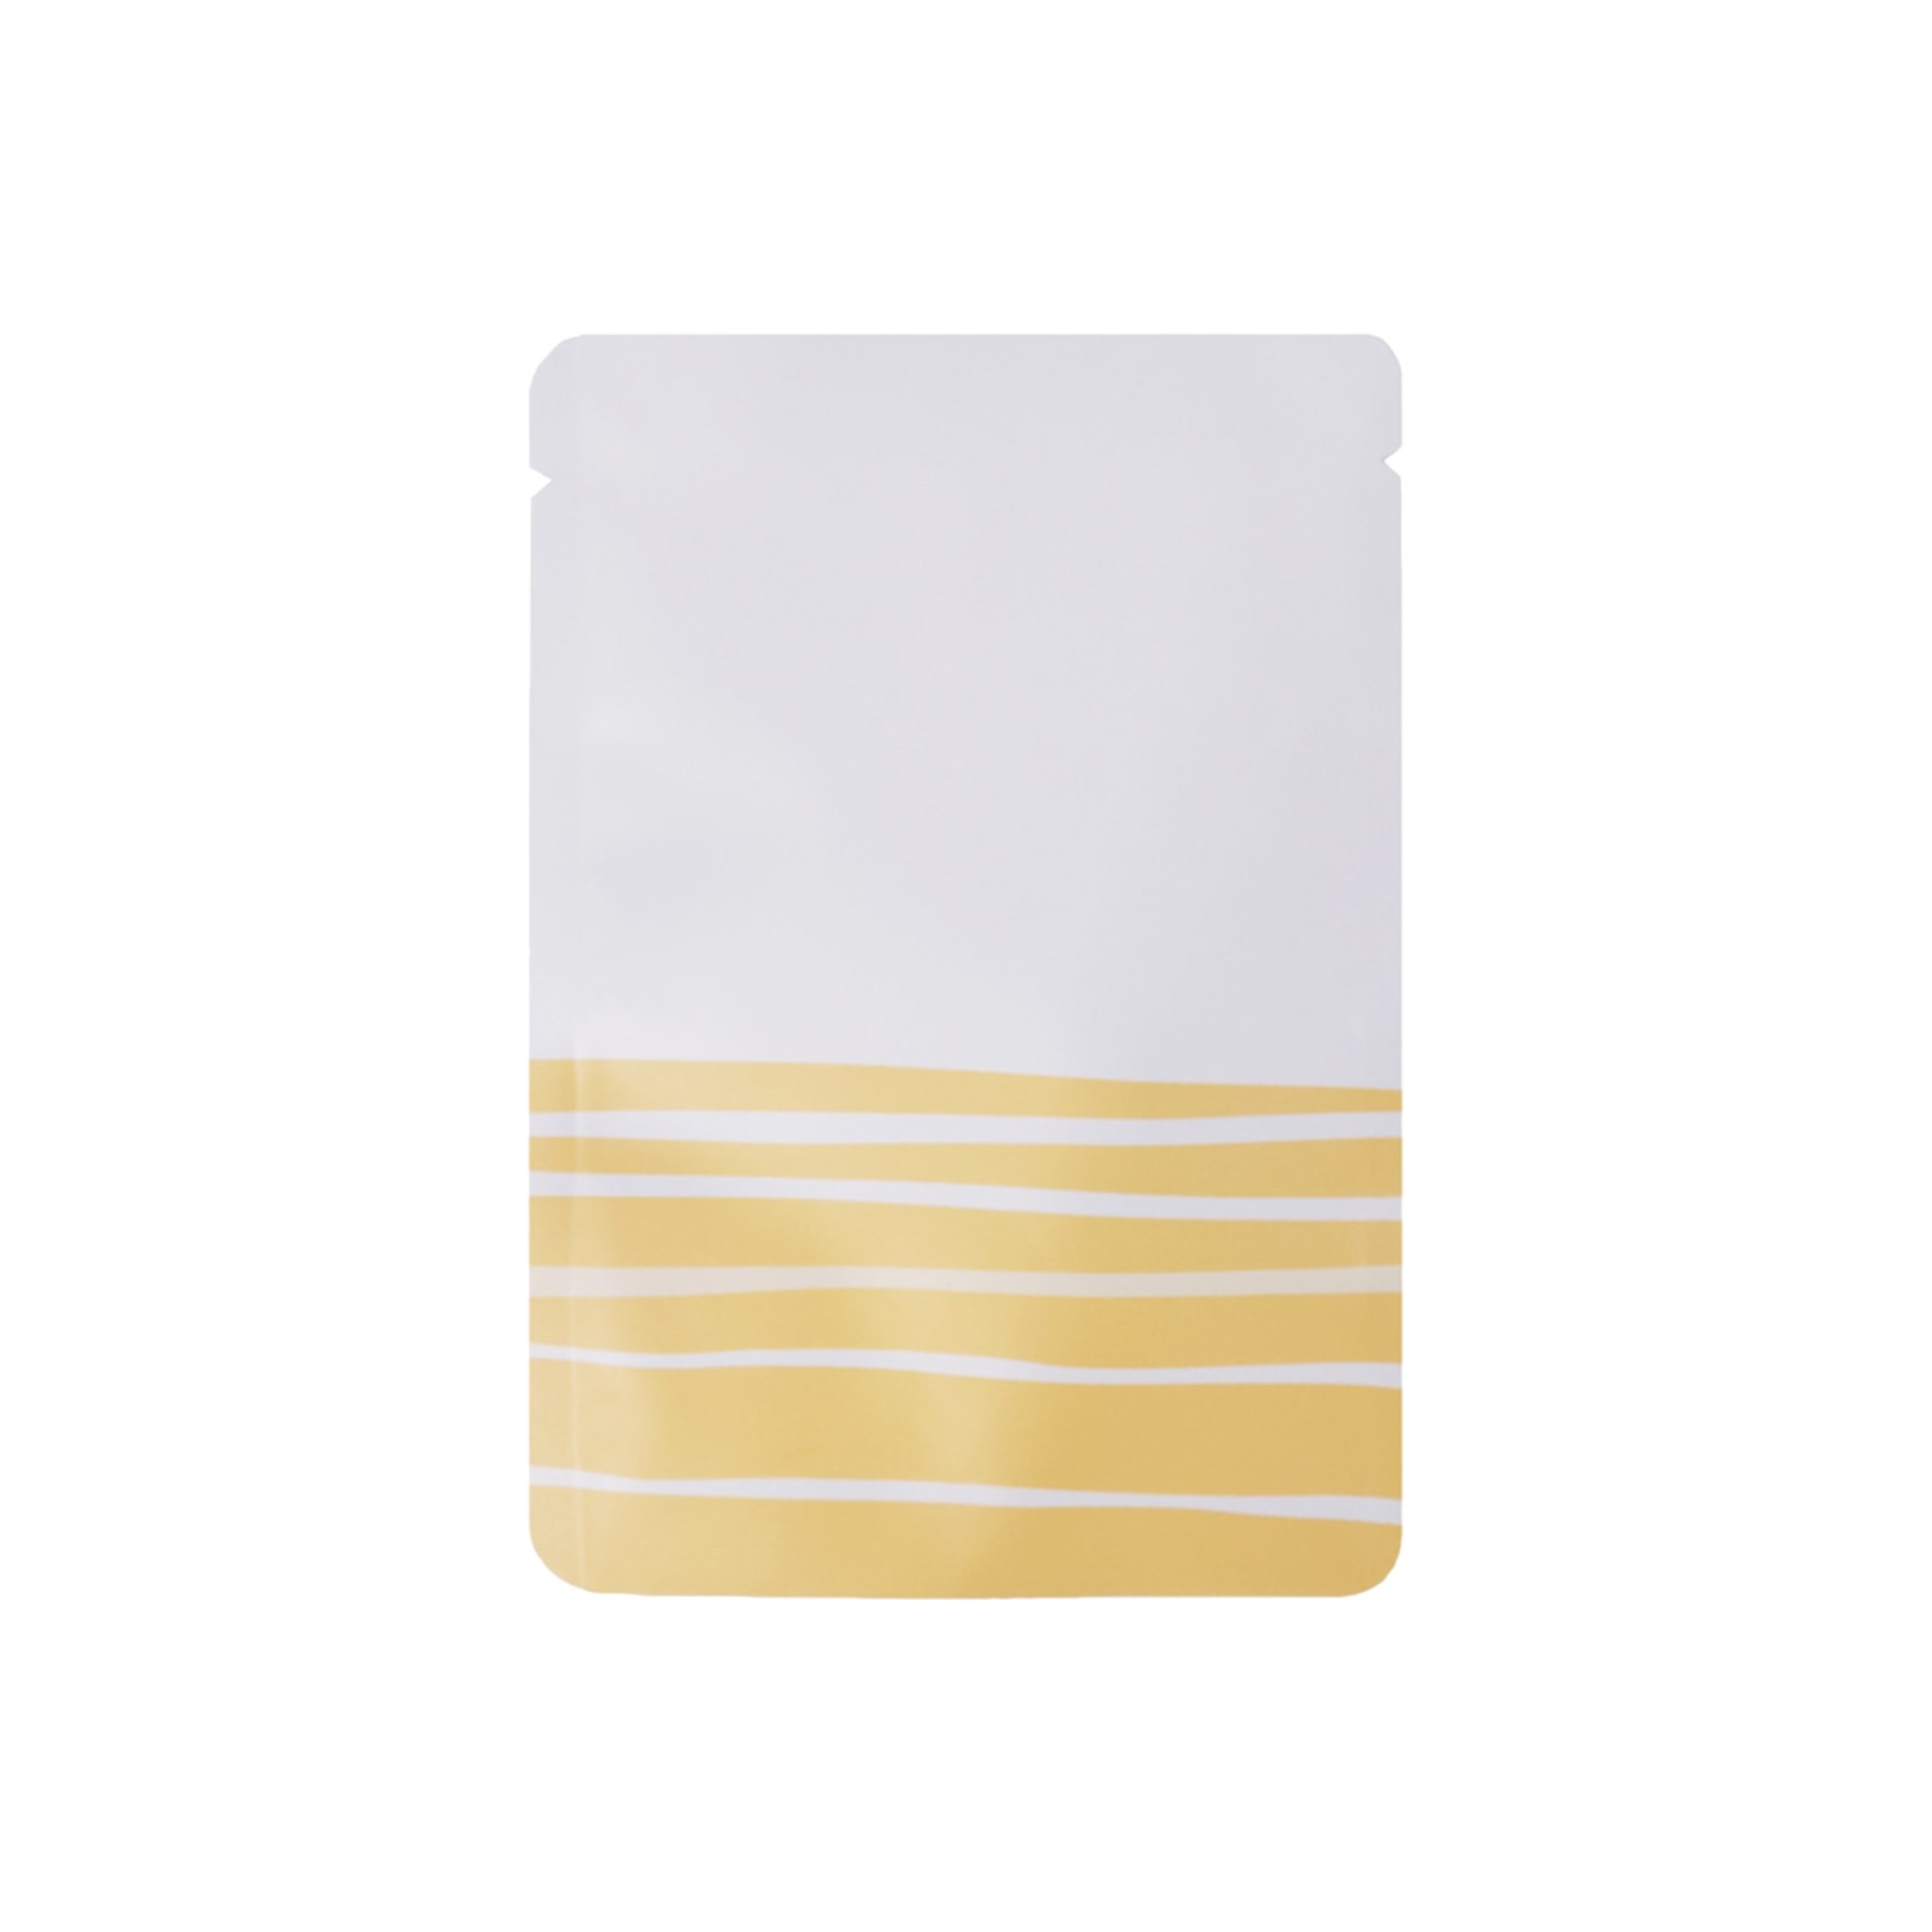 White Metallized Orange Pathway Design Flat Open Top Bags 10 cm x 15 cm [4 inches x 6 inches] (500 Bags/Lot)